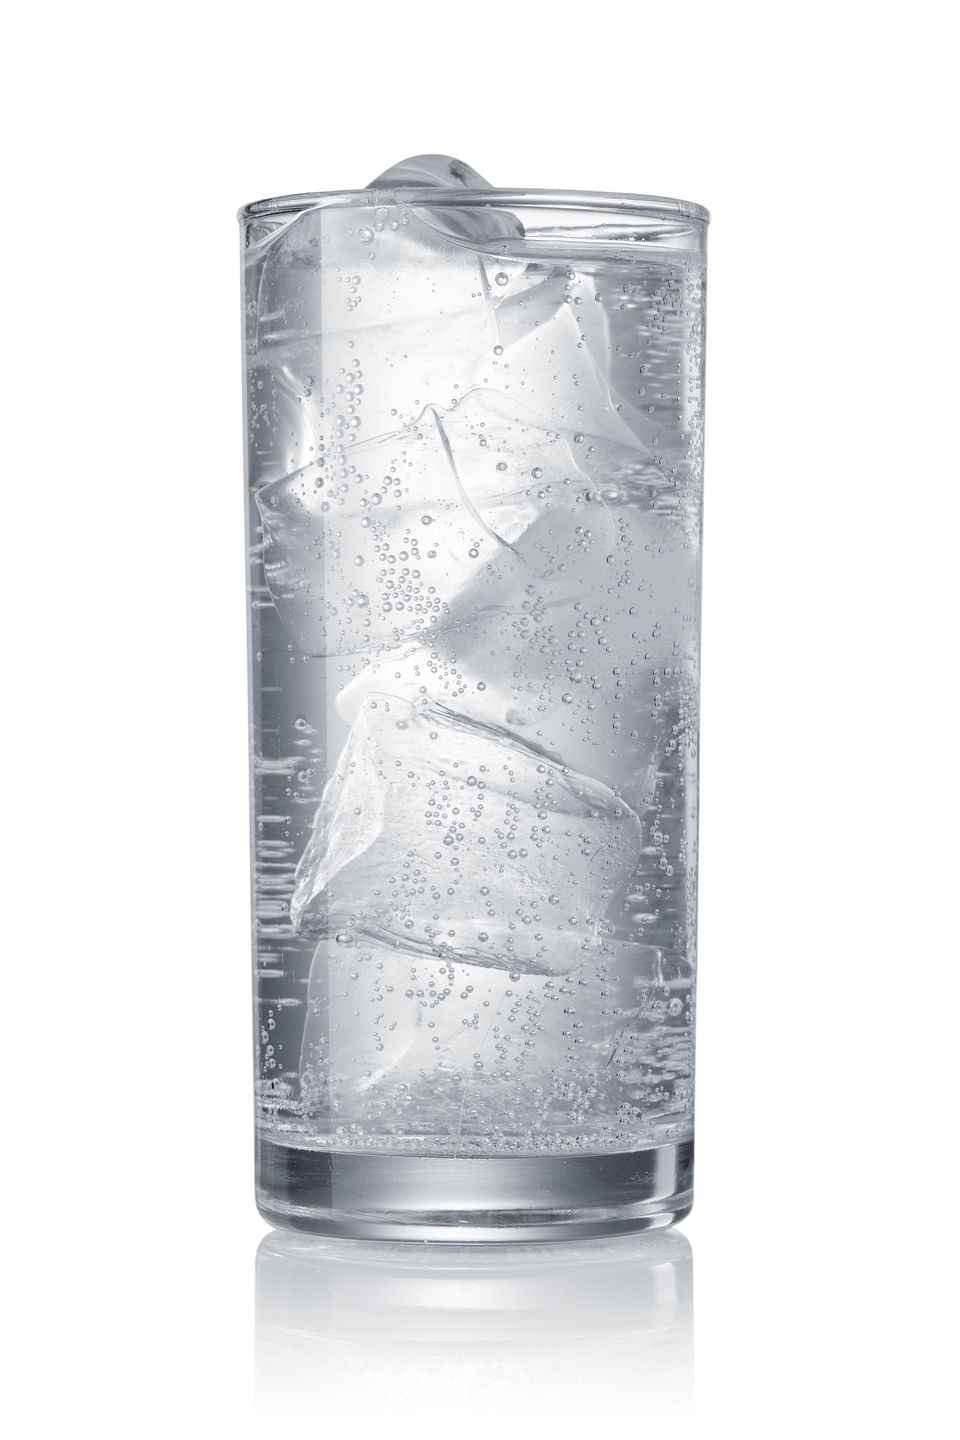 "While drinking regular water boosts your metabolism by <a href=""http://www.bhg.com/health-family/weight-loss/12-ways-to-boost"